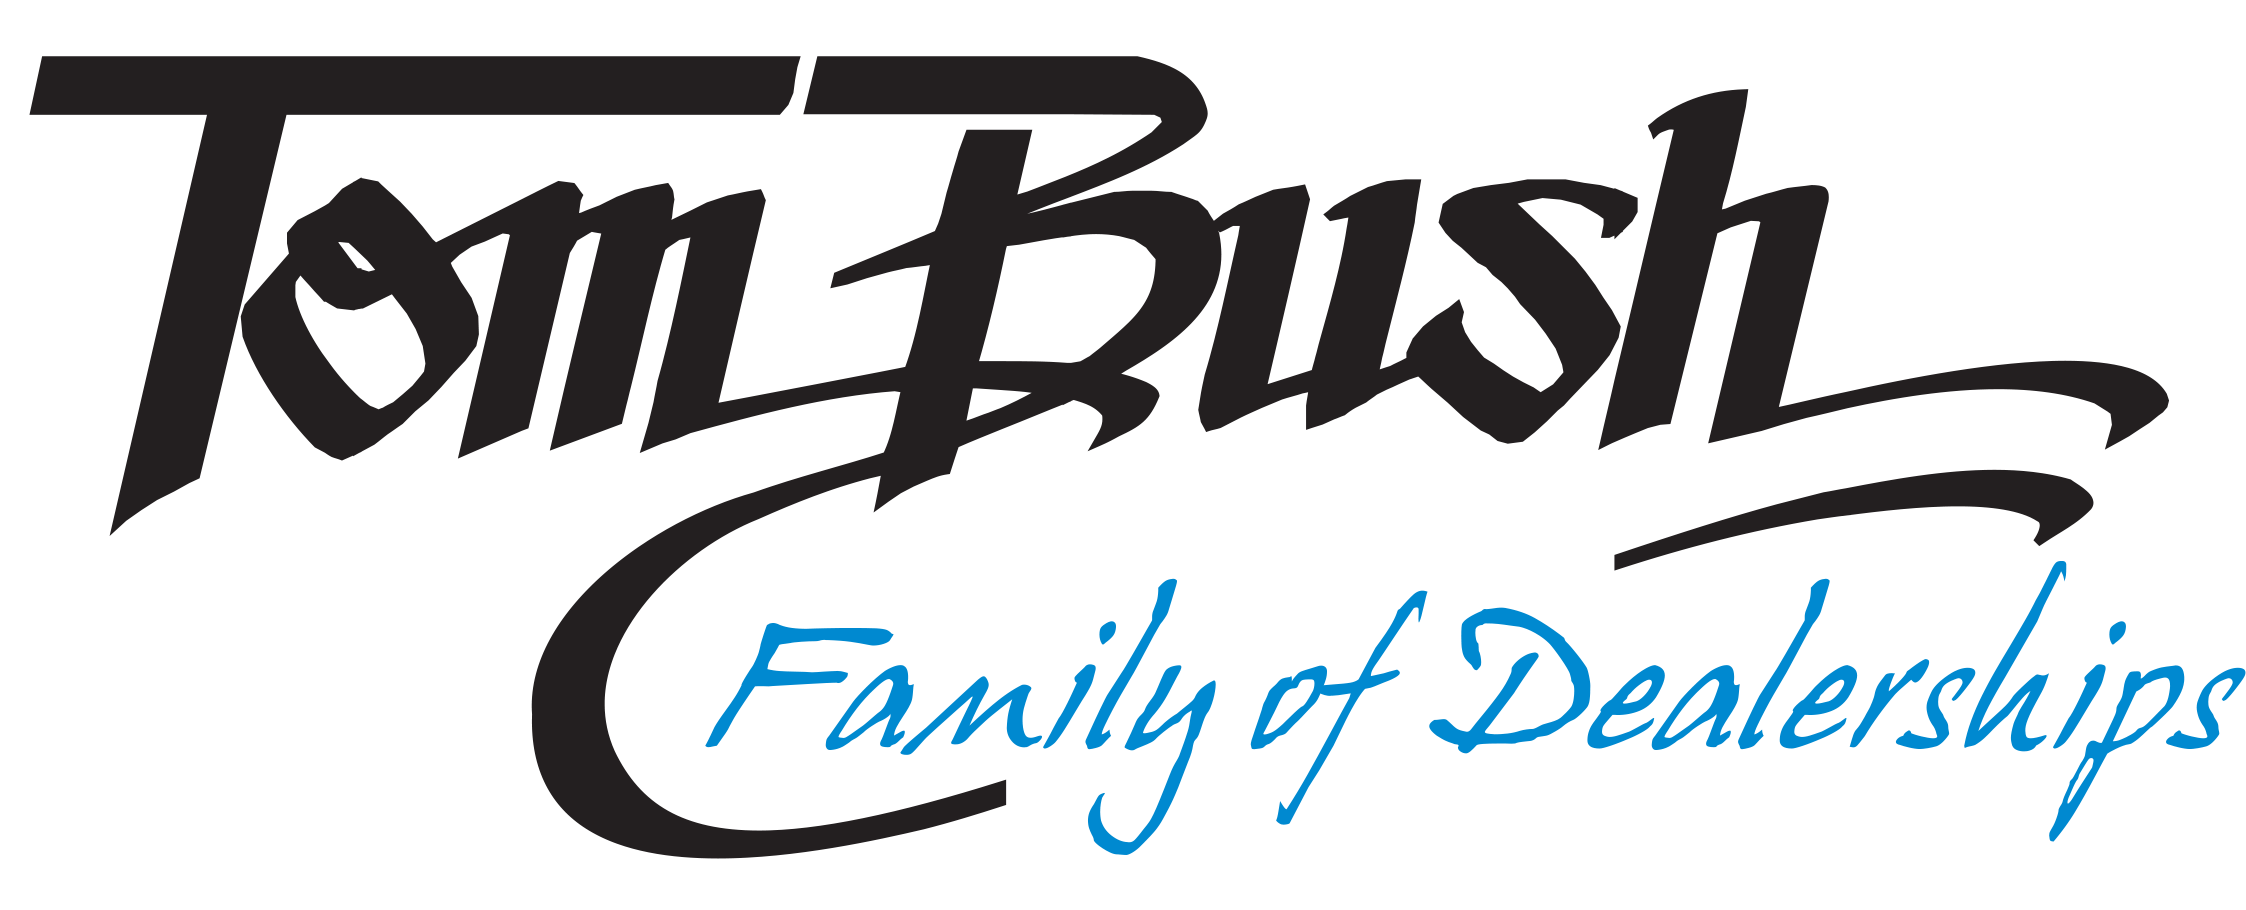 """The soon-to-be famous name """"Tom Bush Family of Dealerships"""" is officially adopted."""